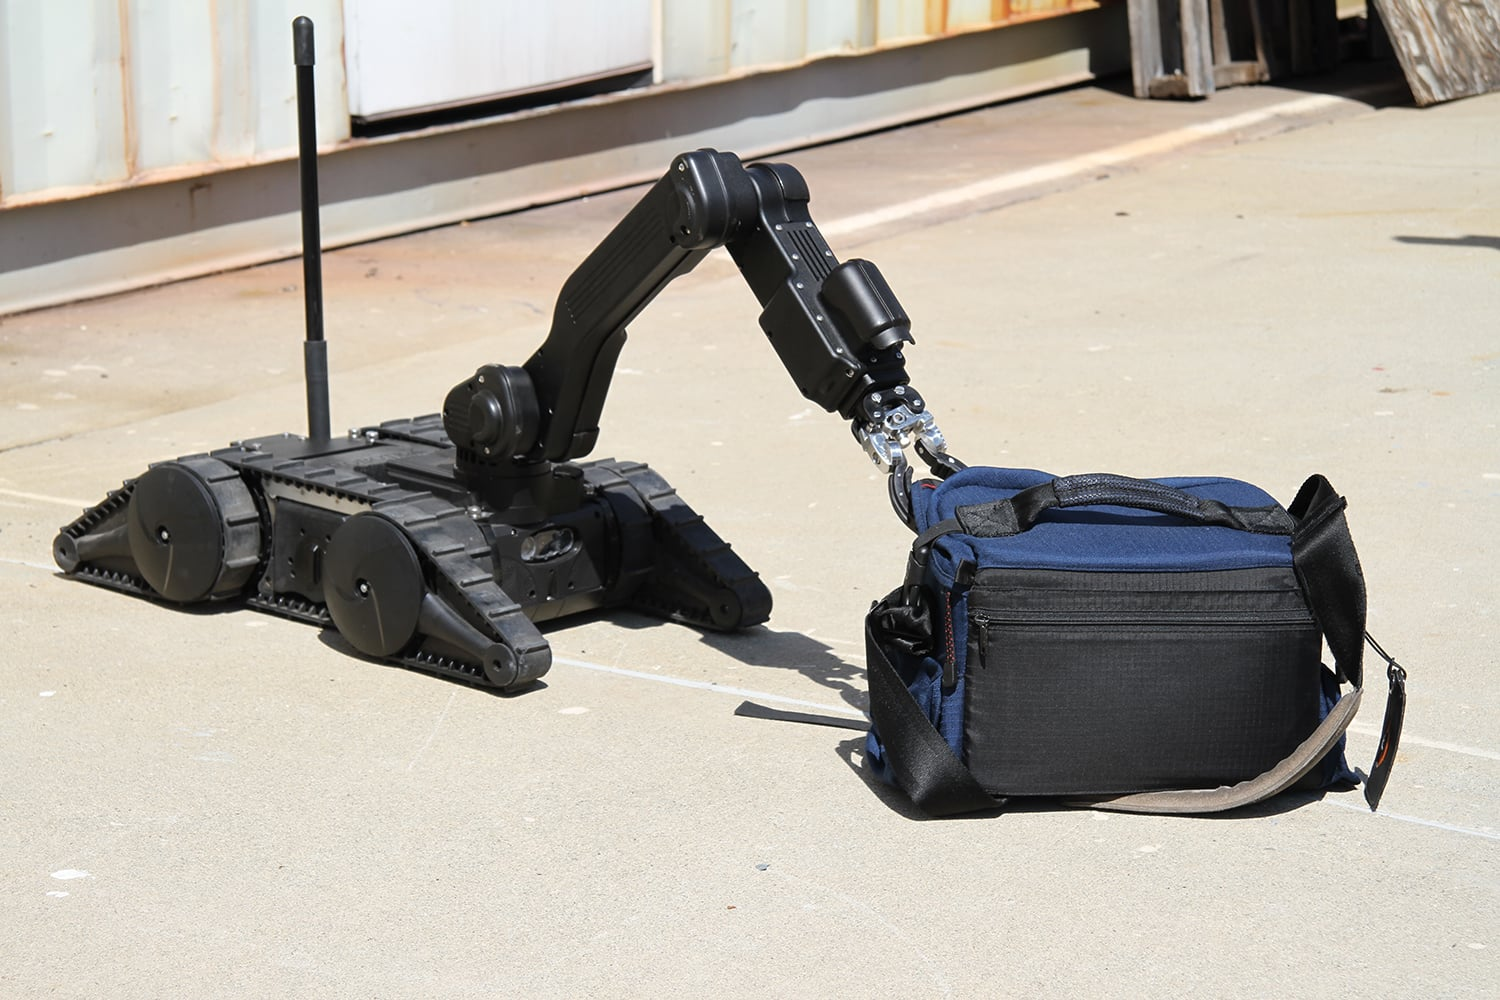 Avatar Manipulator Arm - Robotic